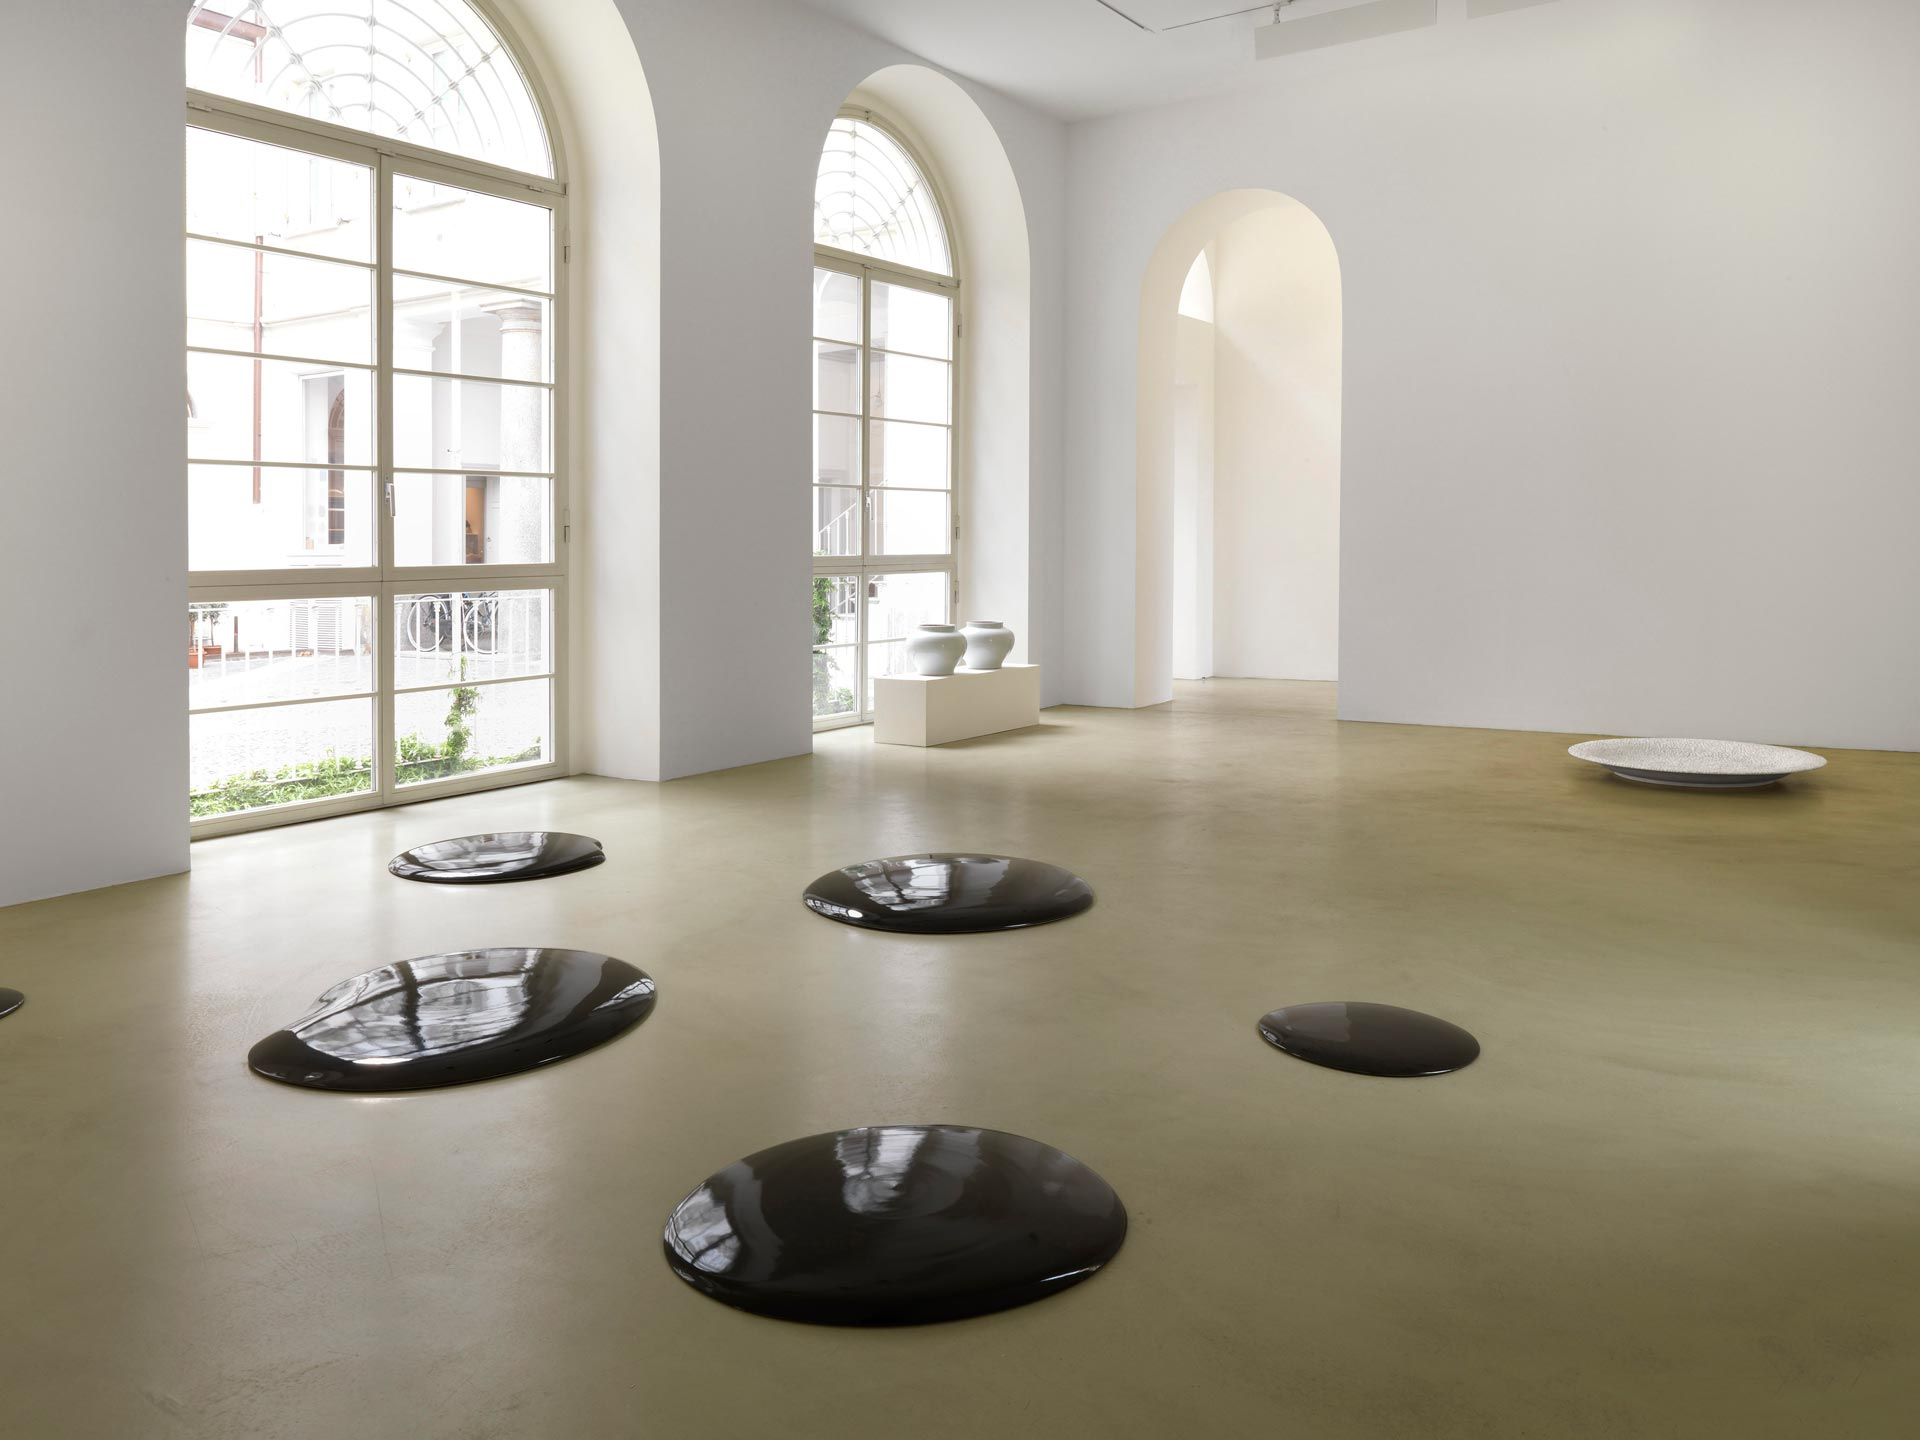 4-AI-WEIWEI-Oil-Spill-2006-porcelain.-Courtesy-the-artist-and-Lisson-Gallery_web